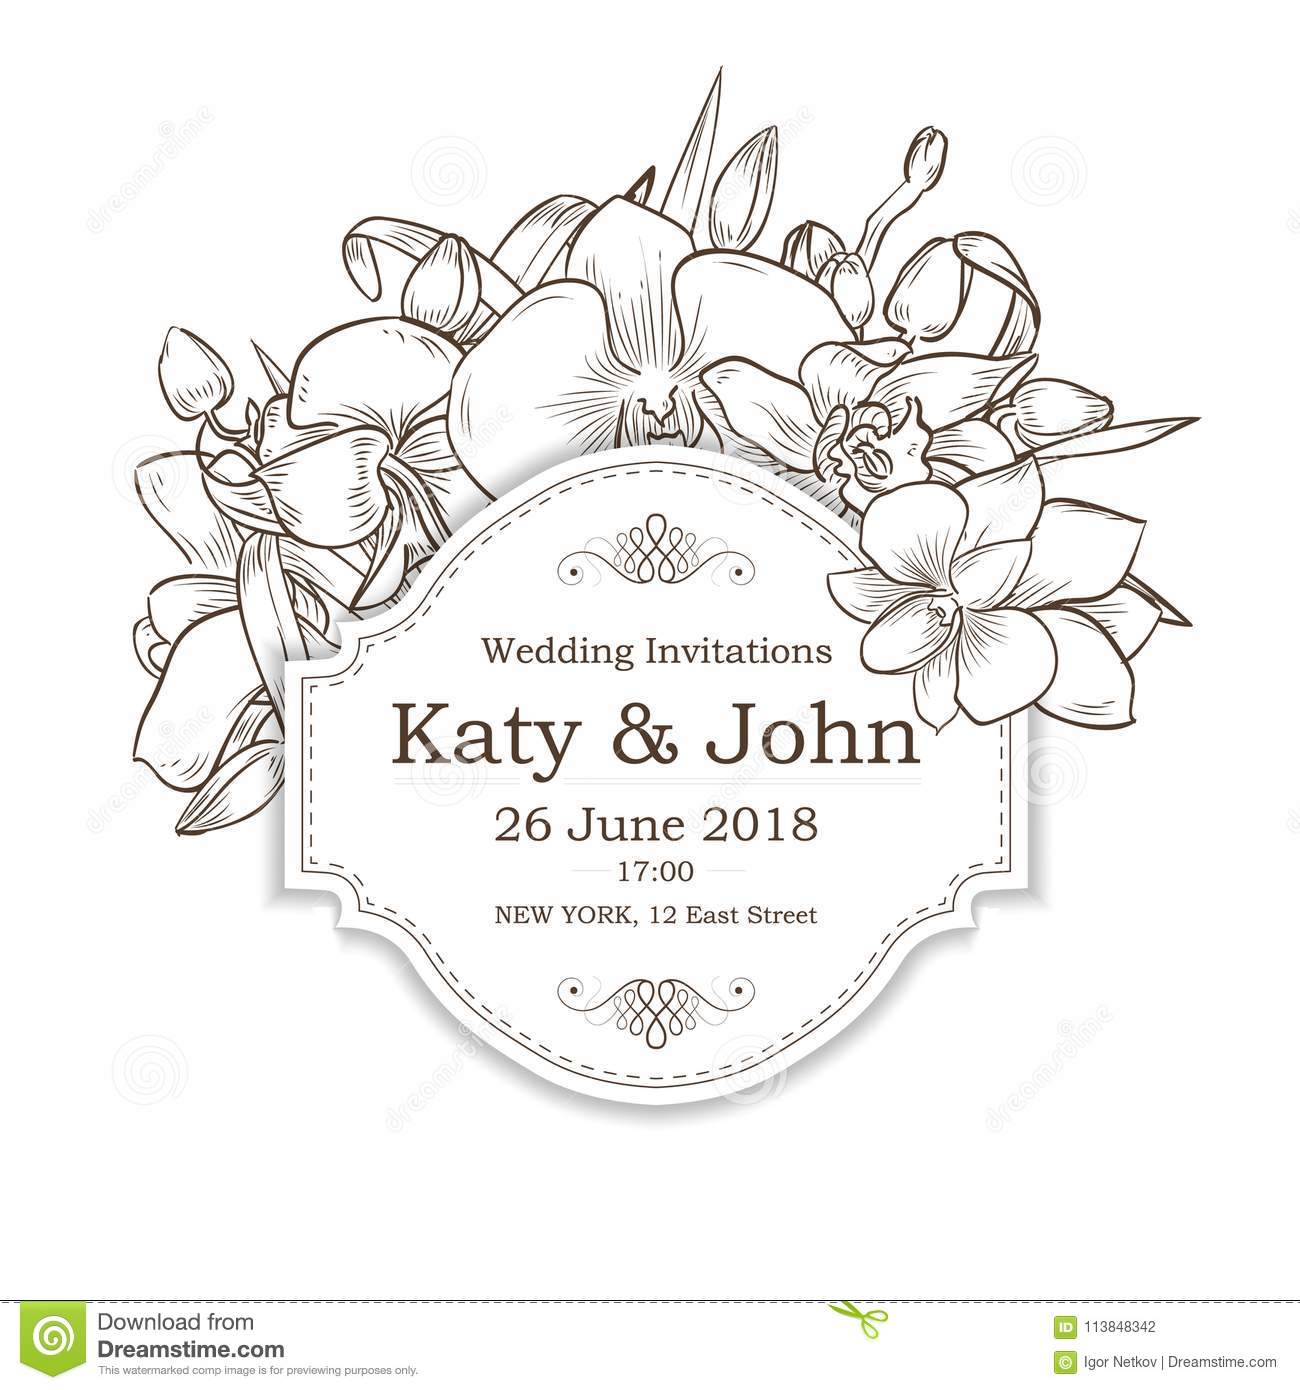 Vector invitation with orchid flowers for wedding stock vector vector invitation with orchid flowers for wedding marriage bridal birthday izmirmasajfo